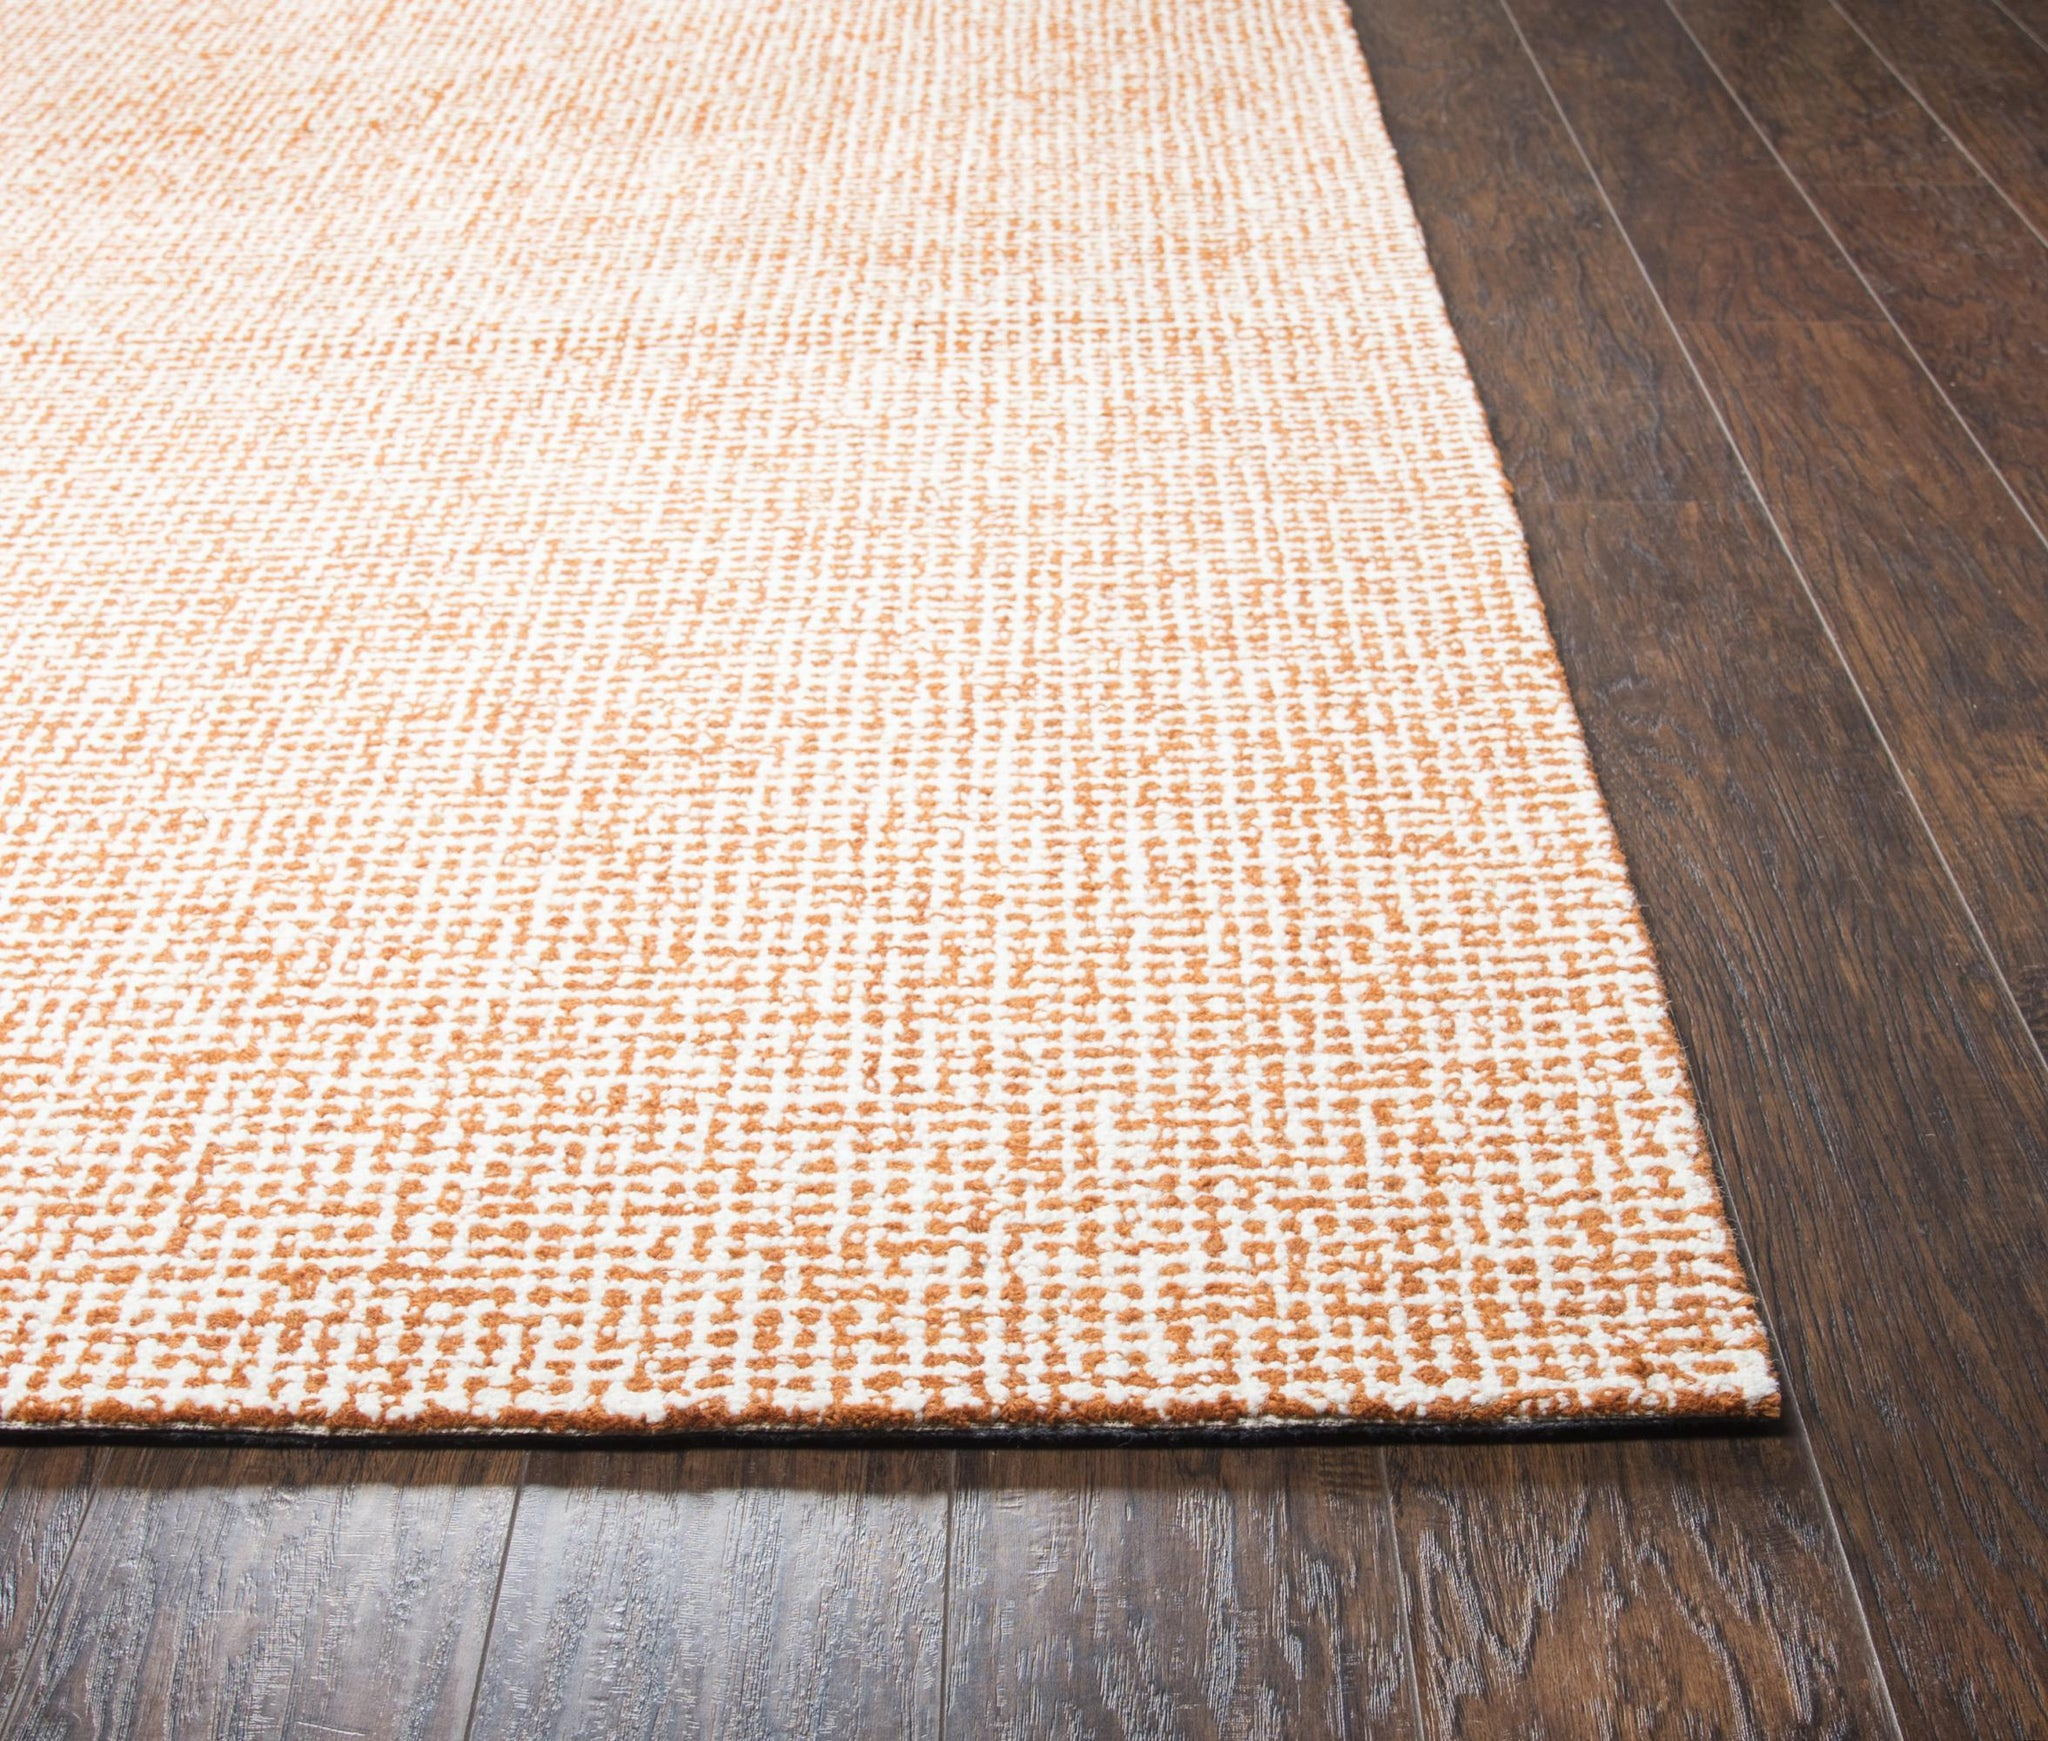 Rizzy Home Area Rugs Brindleton BR652A Orange Area Rug in 39 Unique Shapes and Sizes